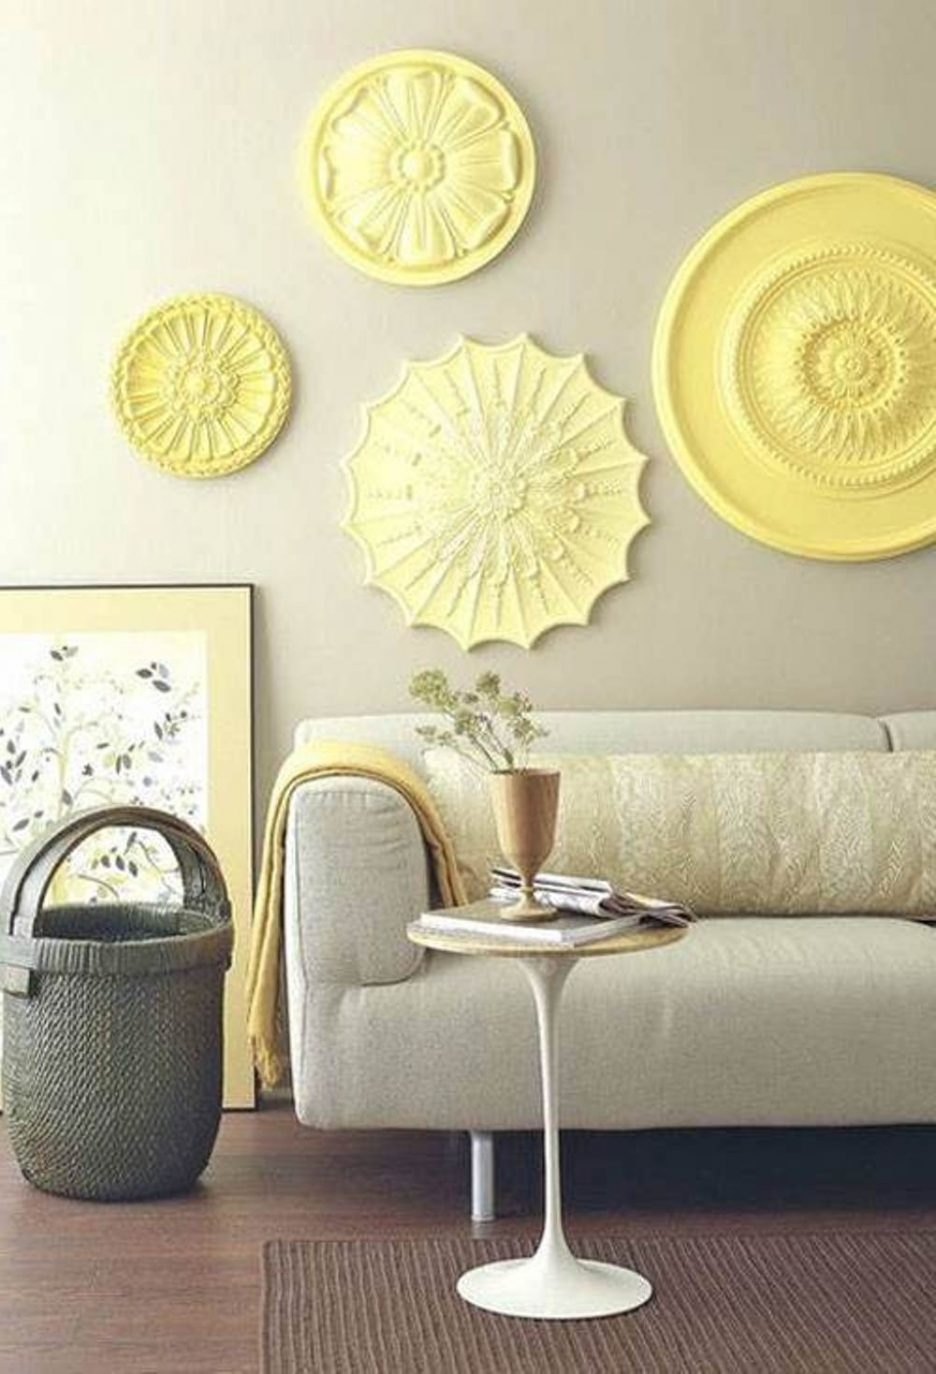 View Gallery of Fabric Circle Wall Art (Showing 4 of 15 Photos)